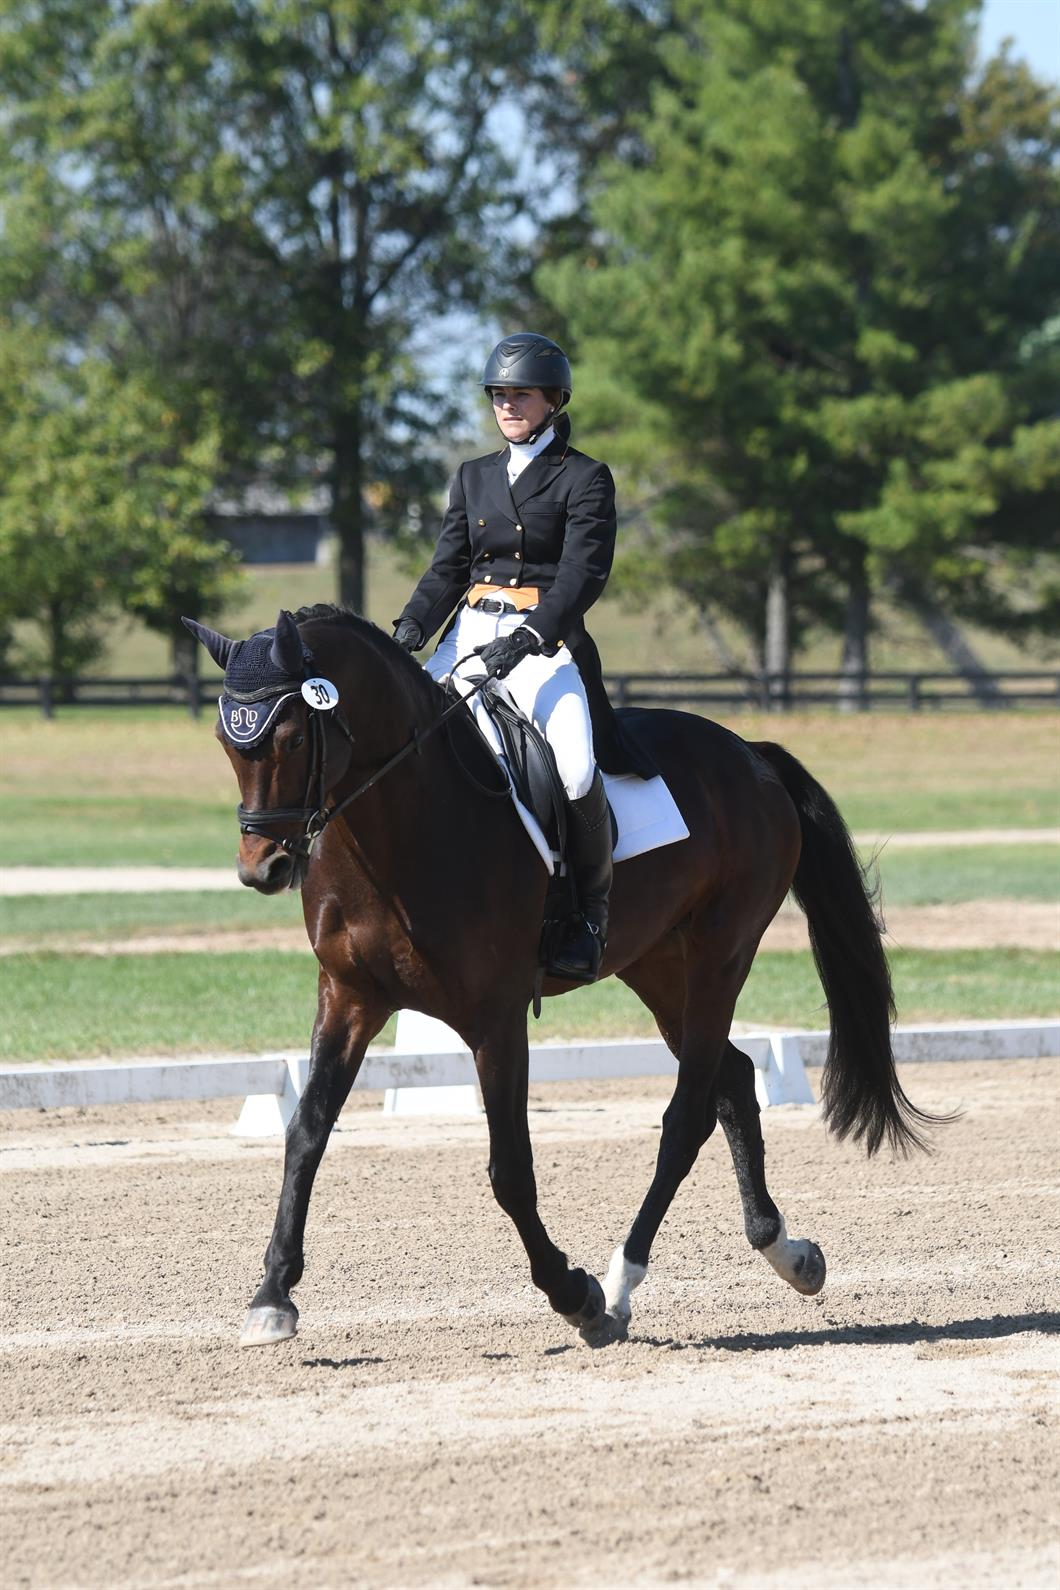 Hutchins Kristen Takes The Lead After Dressage In The Usef